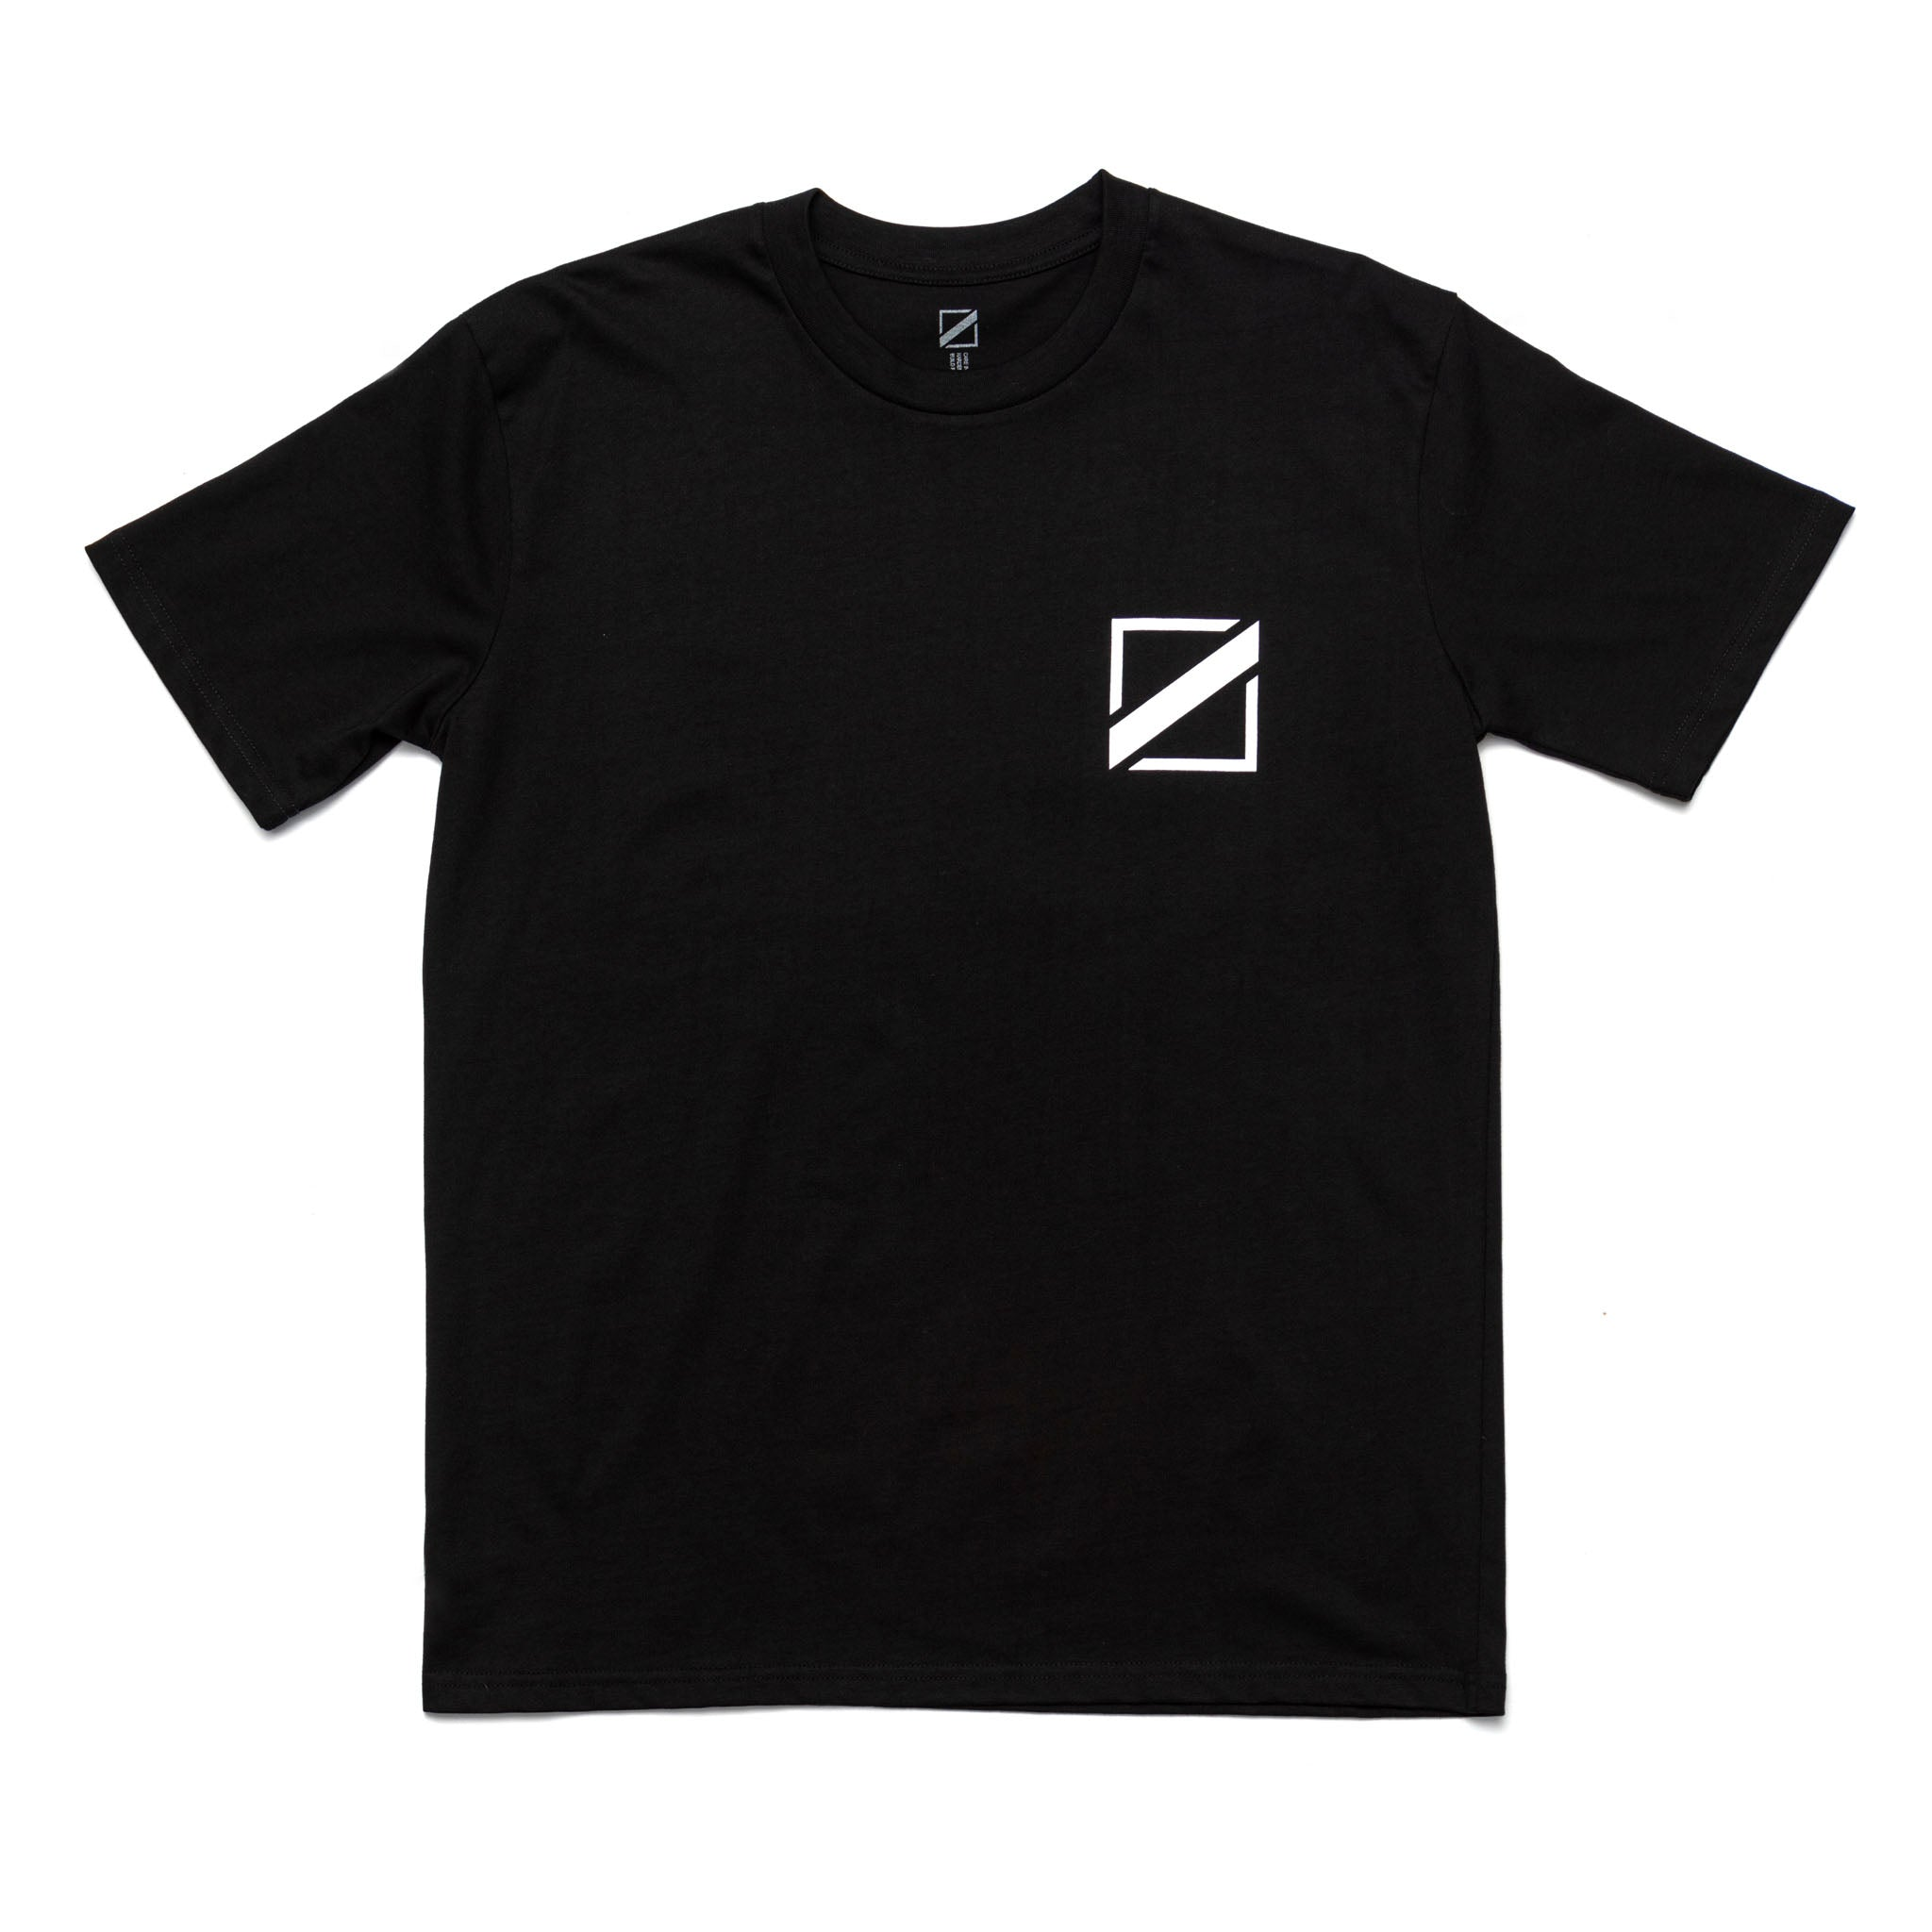 MF - NOBODY TEE (BLACK)